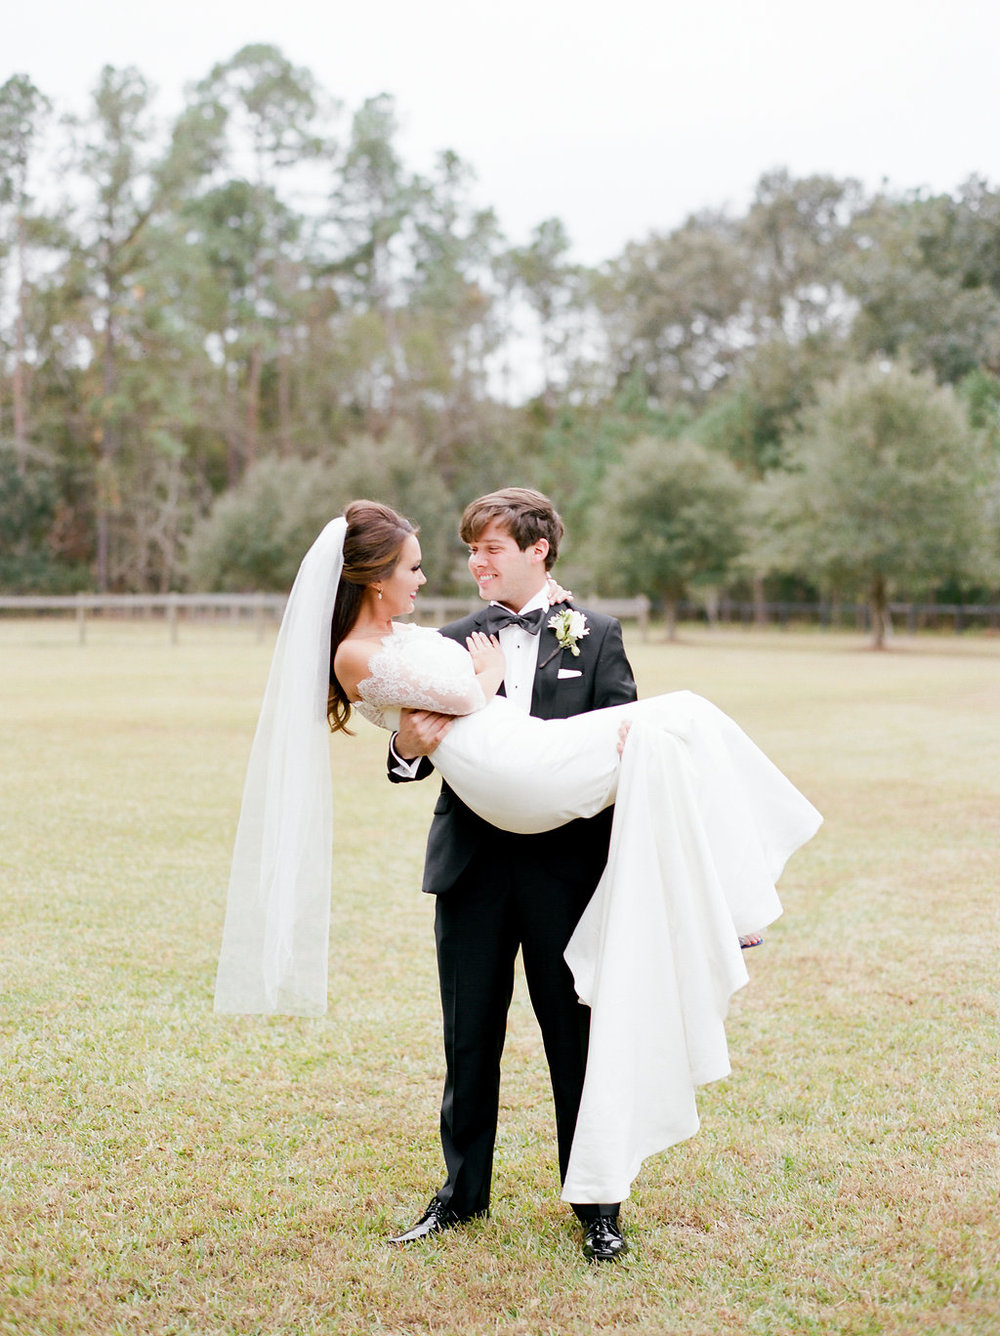 mps-photographie-nicole-miller-dakota-savannah-bridal-boutique-ivory-and-beau-bridal-boutique-savannah-weddings-savannah-bride-southern-bride-savannah-weddings-adele-amelia-veil-16.jpg